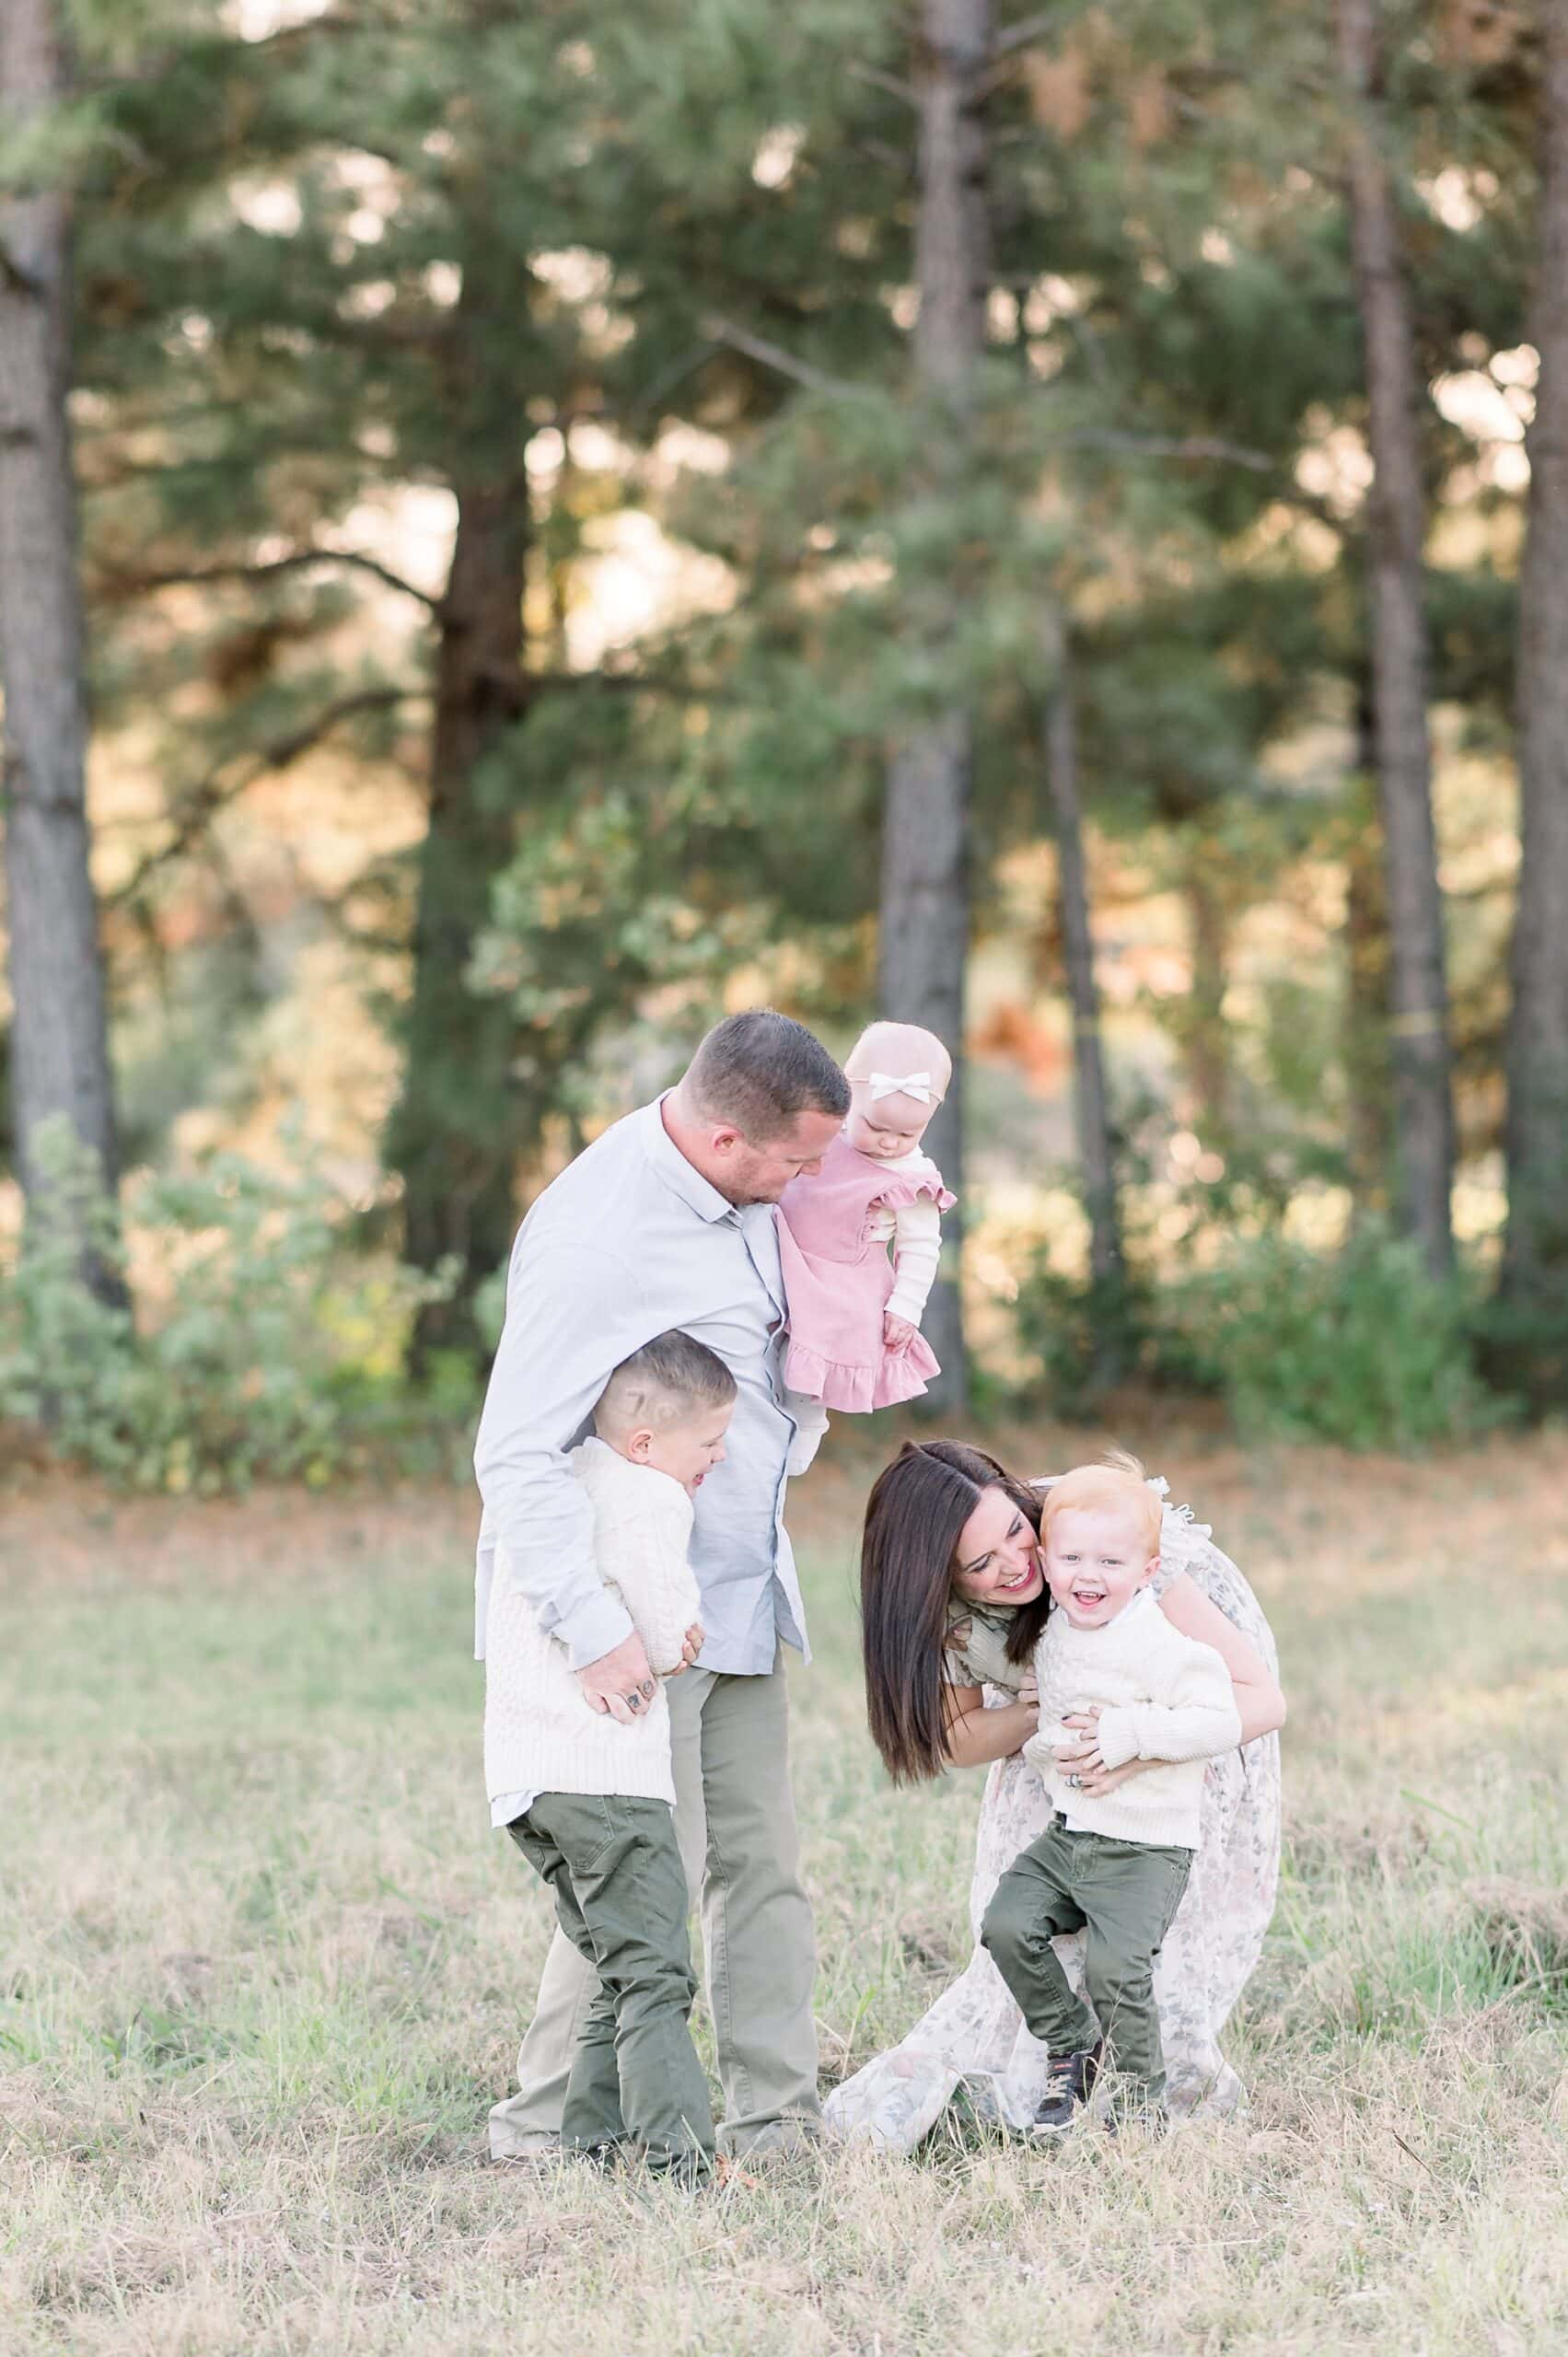 Mom and Dad hugging toddlers during family session. Photo by Aimee Hamilton Photography.